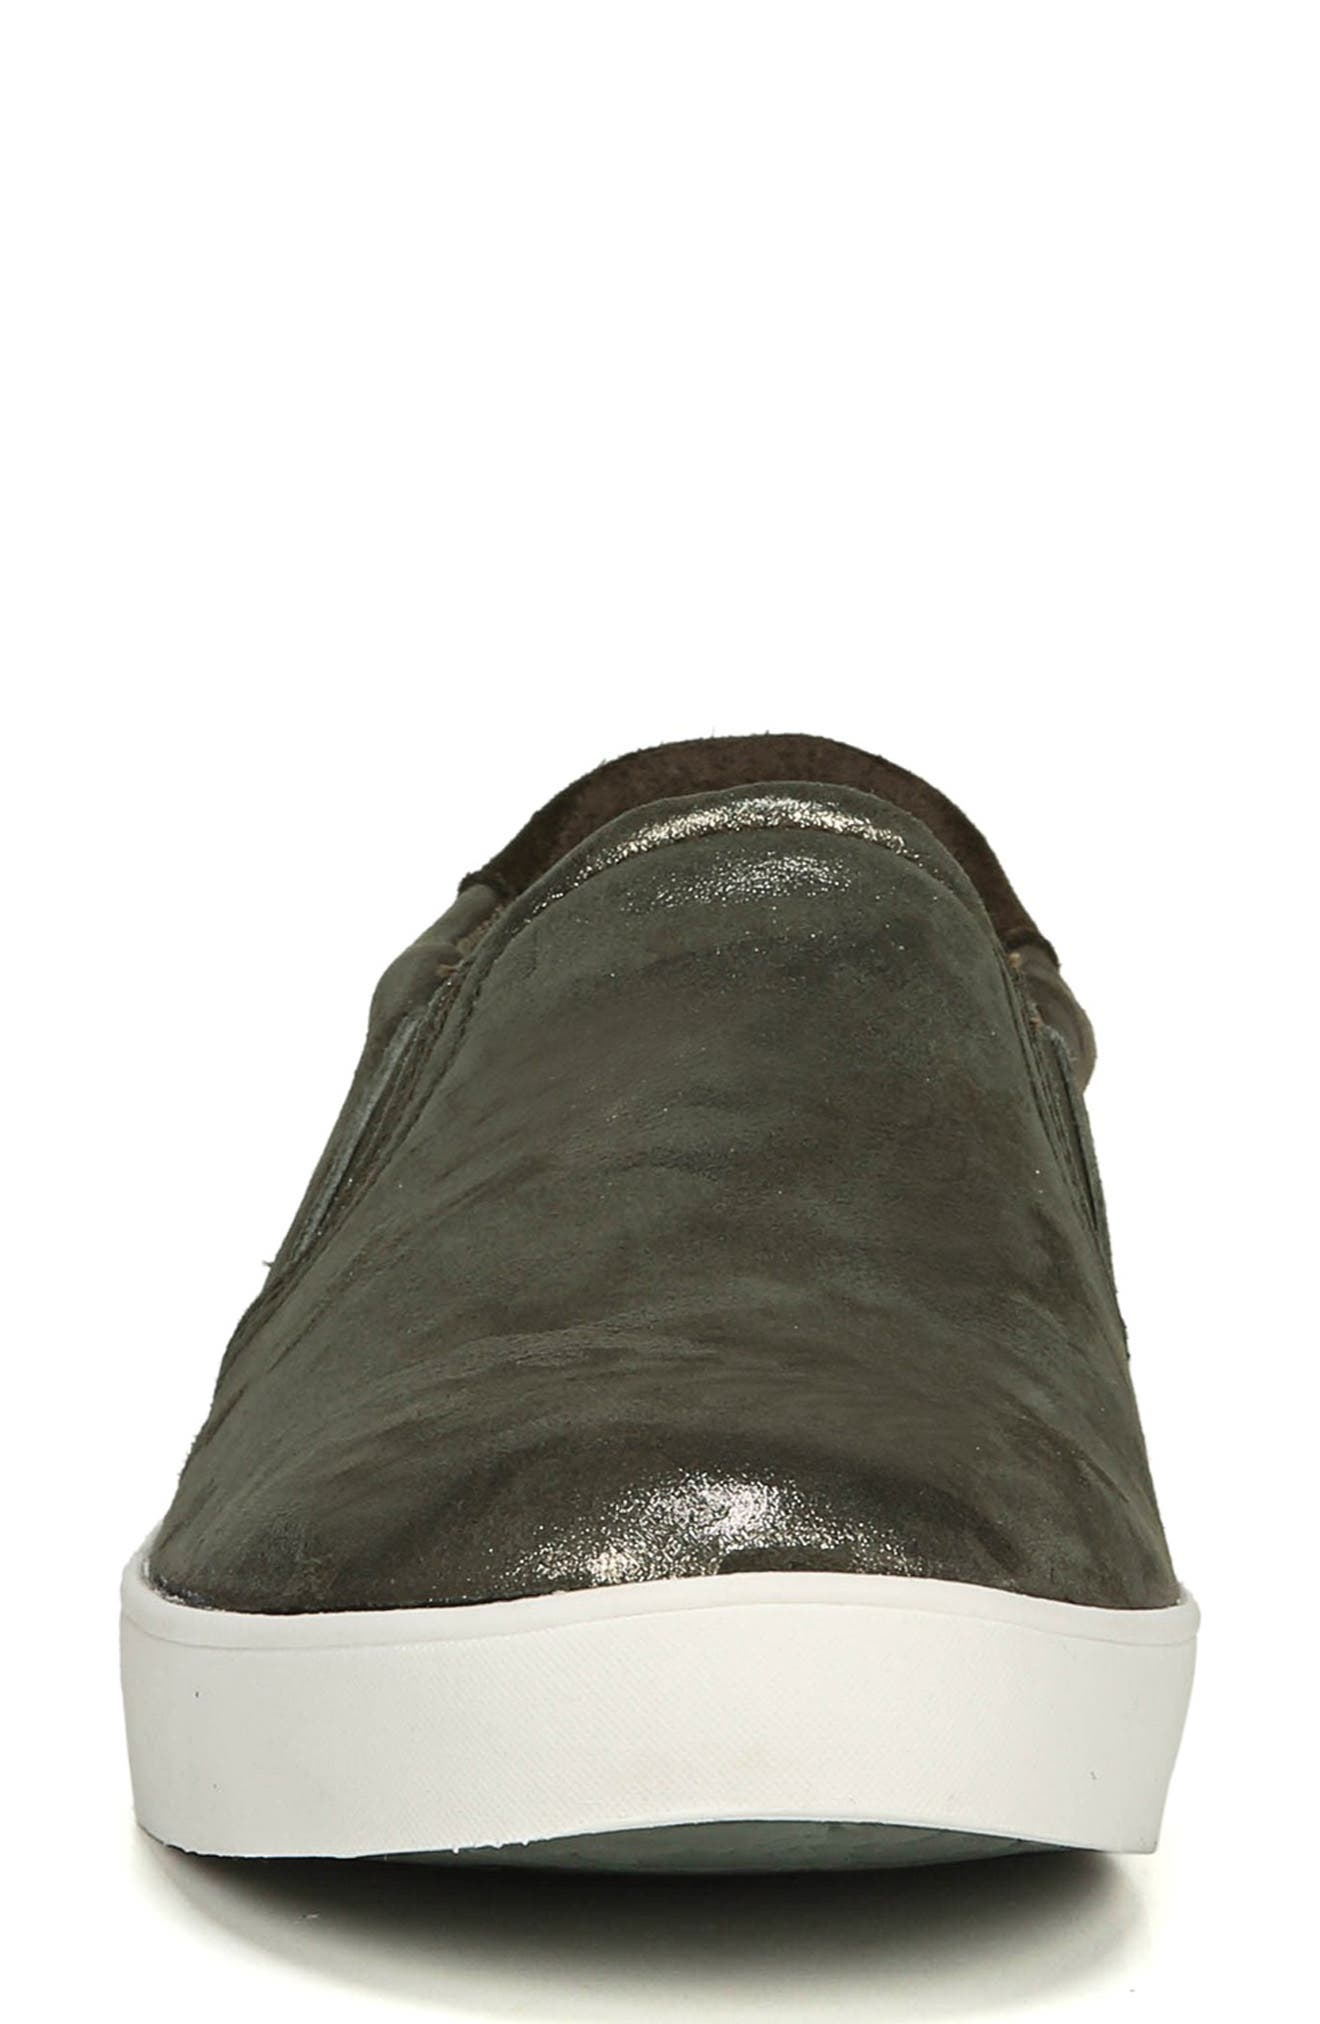 Original Collection 'Scout' Slip On Sneaker,                             Alternate thumbnail 4, color,                             GREEN LEATHER